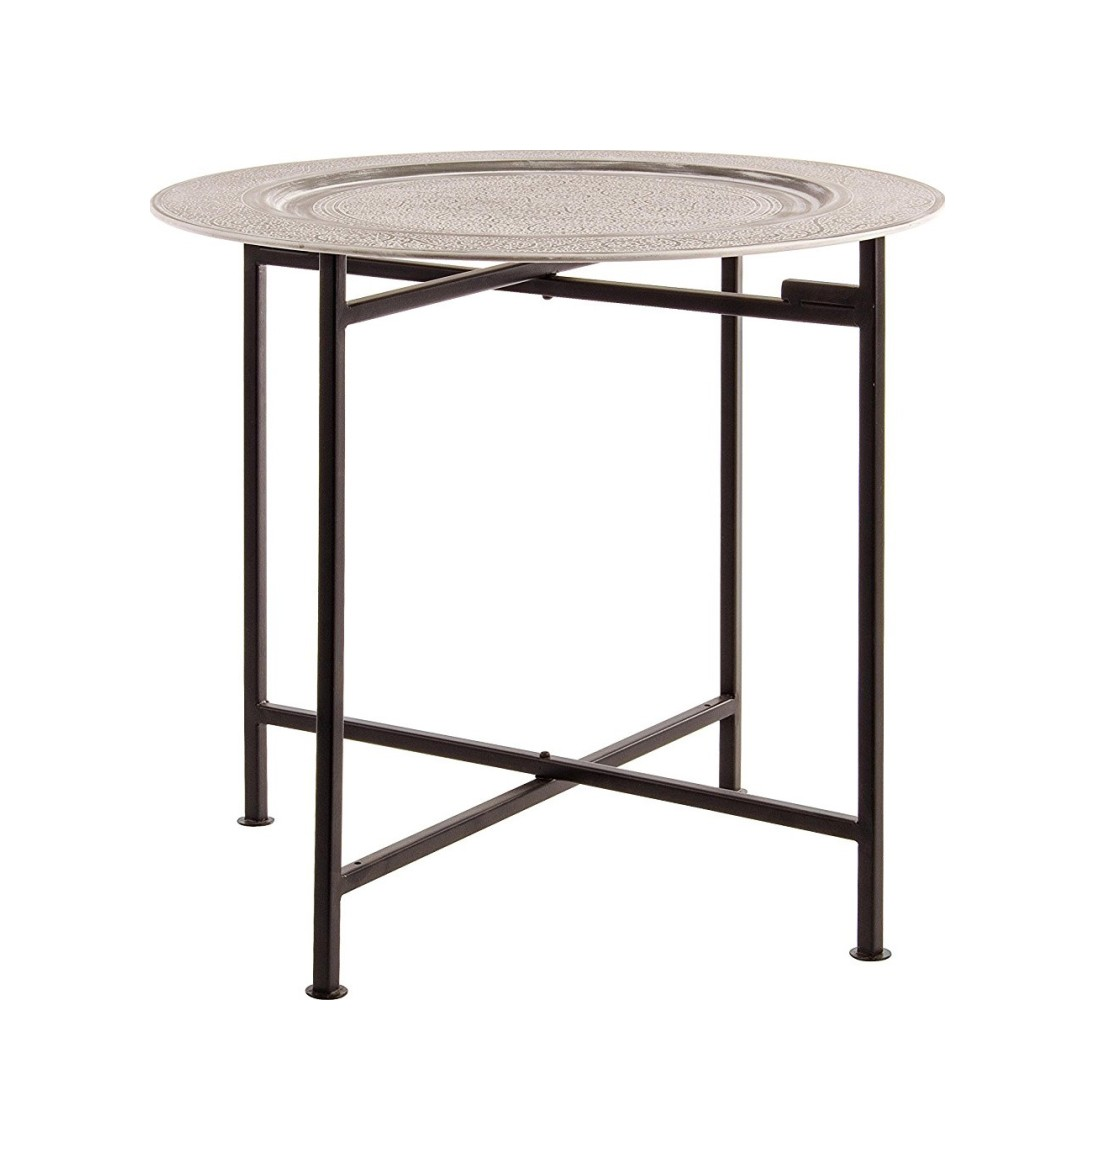 Photos 1: Bizzotto 0746051 Anil Round table in metal d. 50